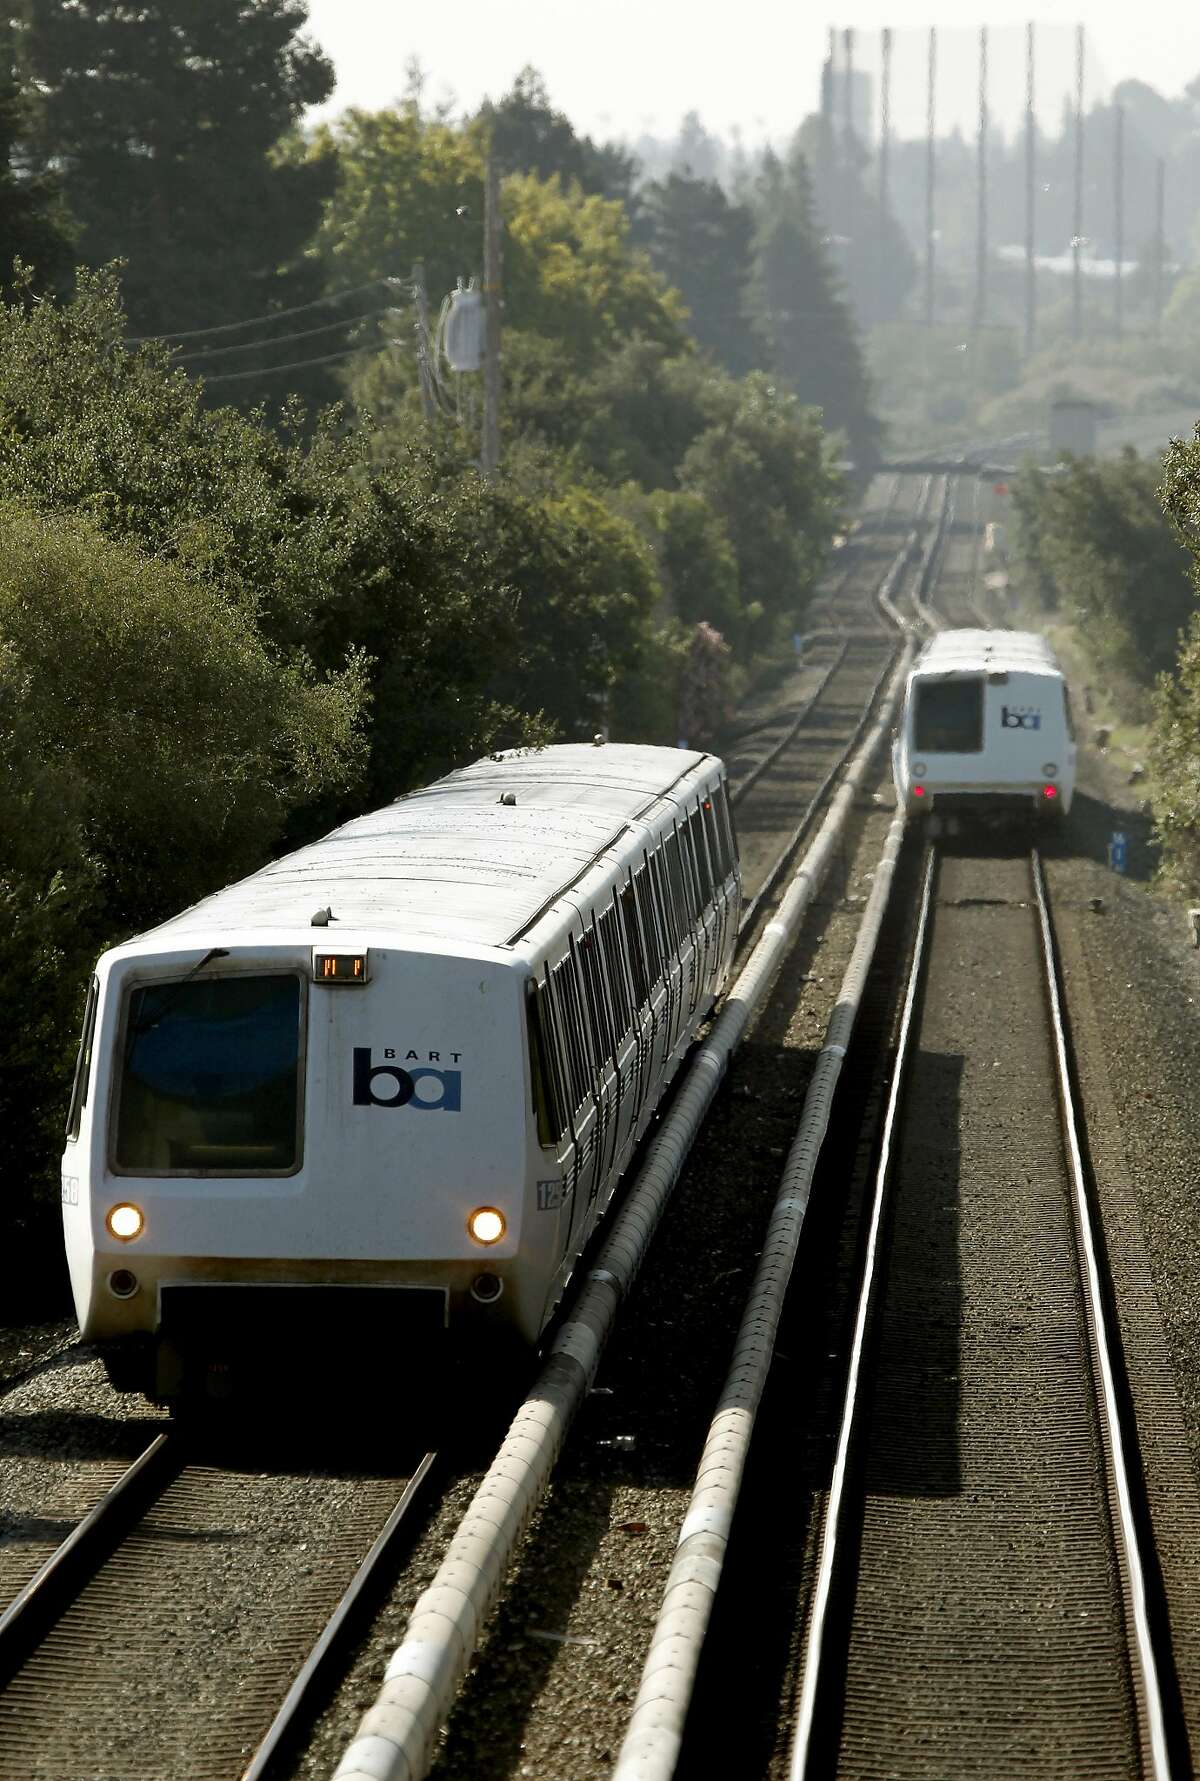 BART trains along the Fremont line roll through Hayward, Calif., on Friday September 07, 2012. The BART transit system is celebrating it's 40th year in service.